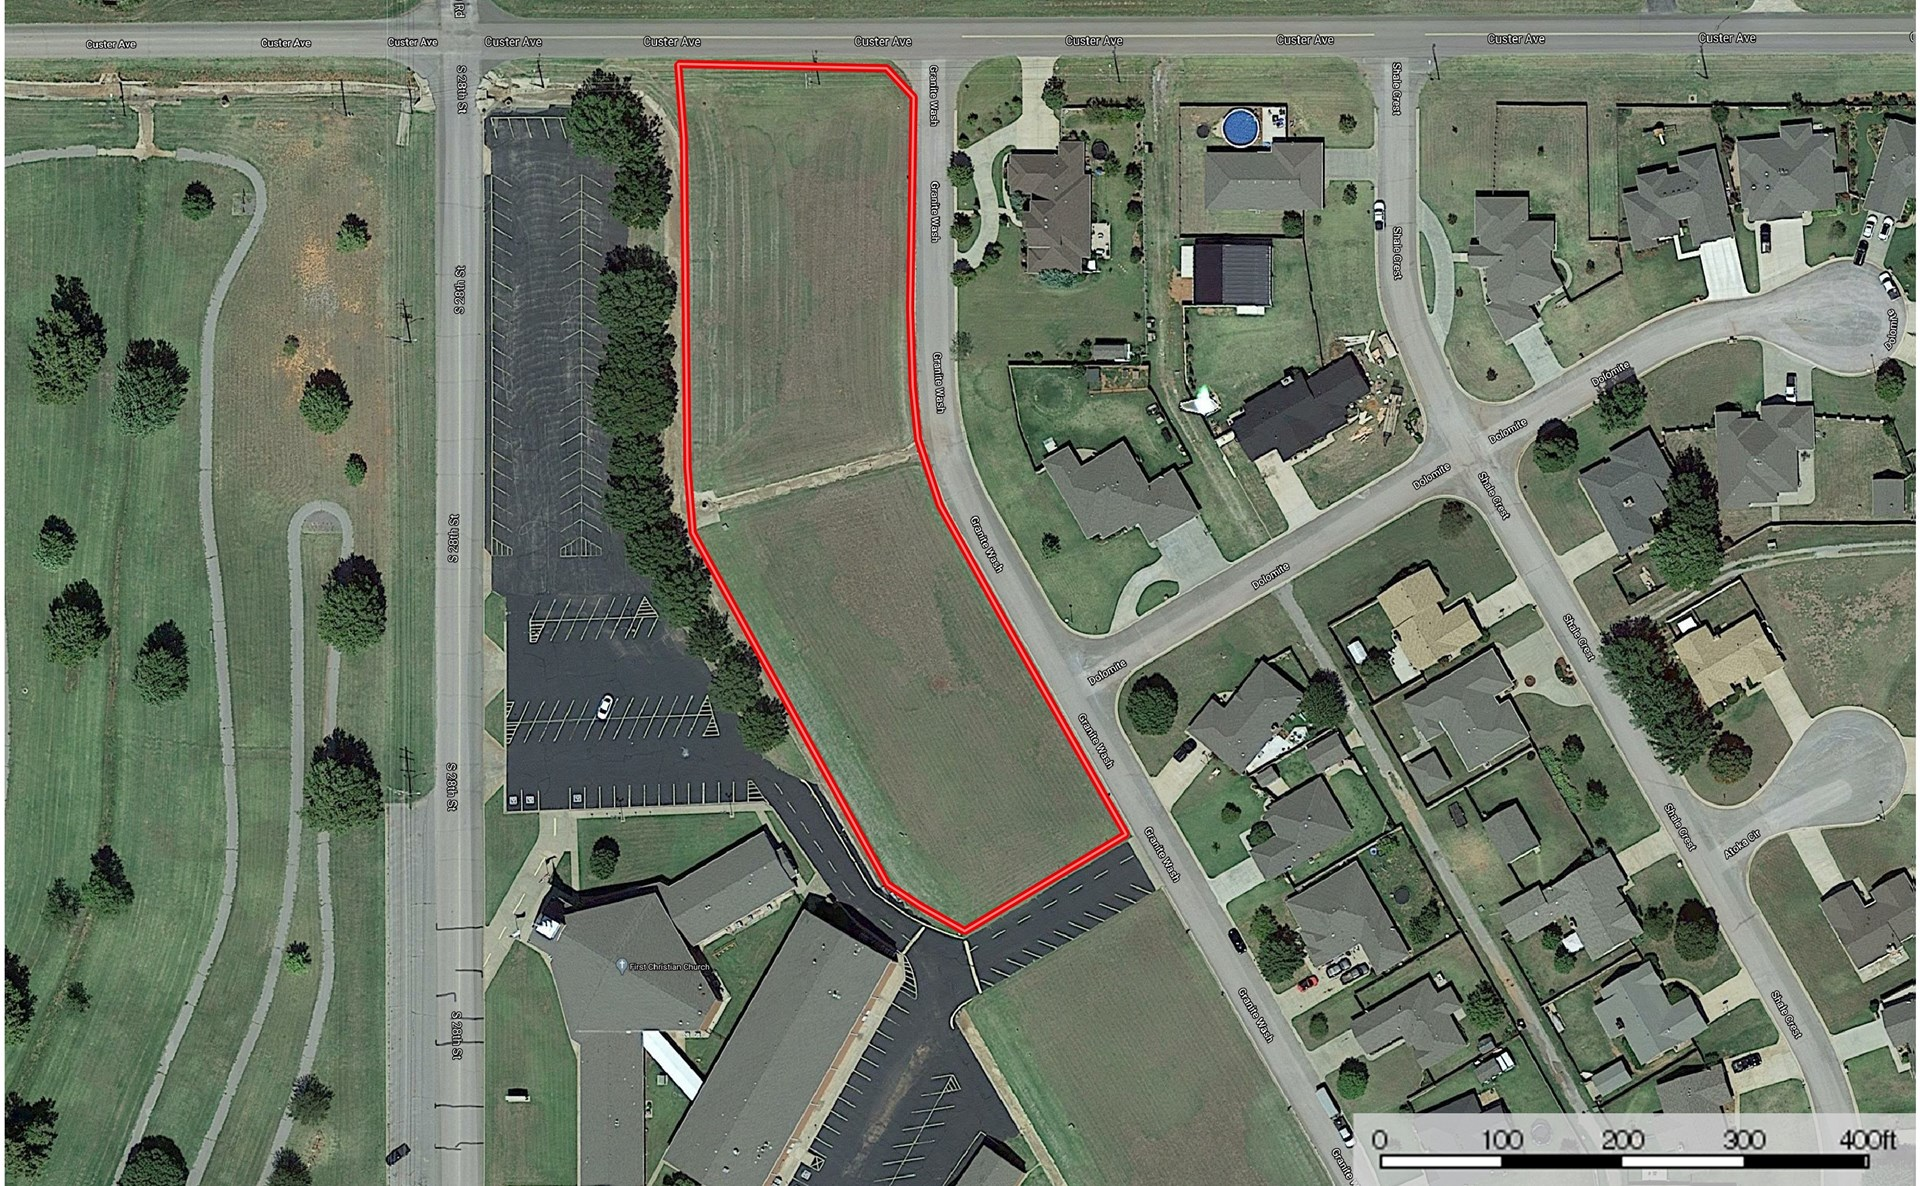 Residential Lot for Sale in Clinton, OK